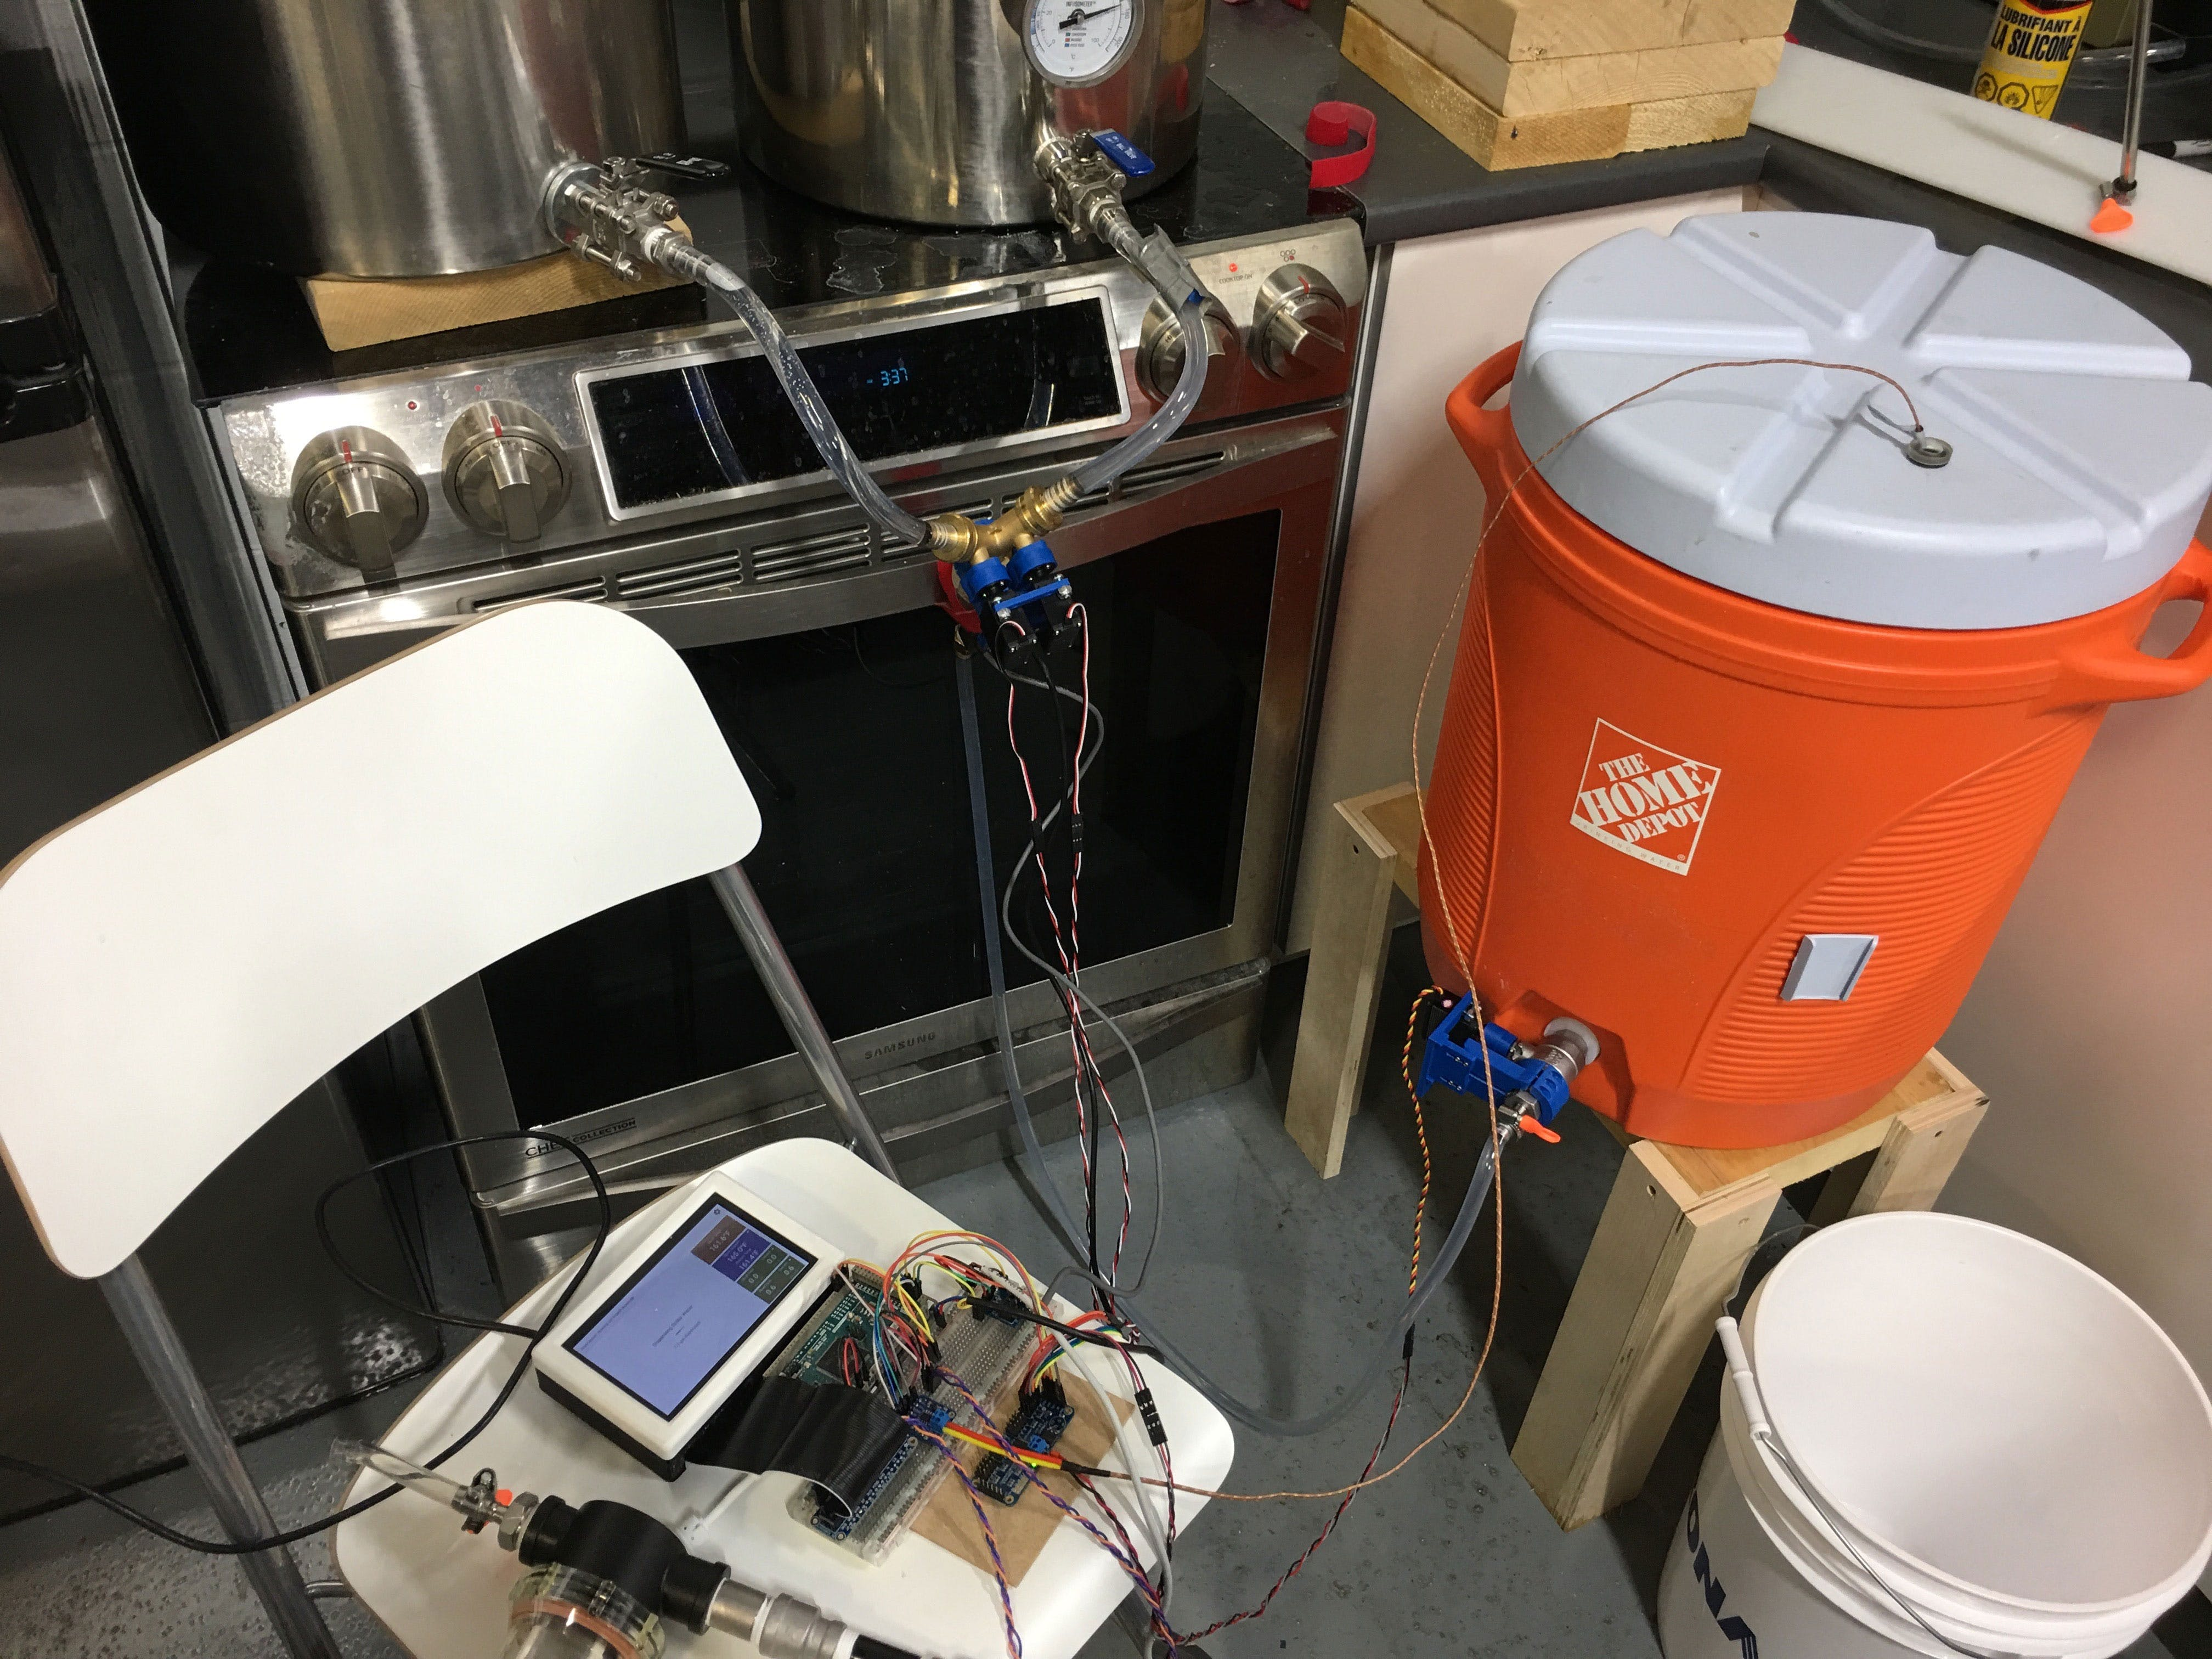 BrewCentral - Great Tasting All-Grain Brewing for Everyone